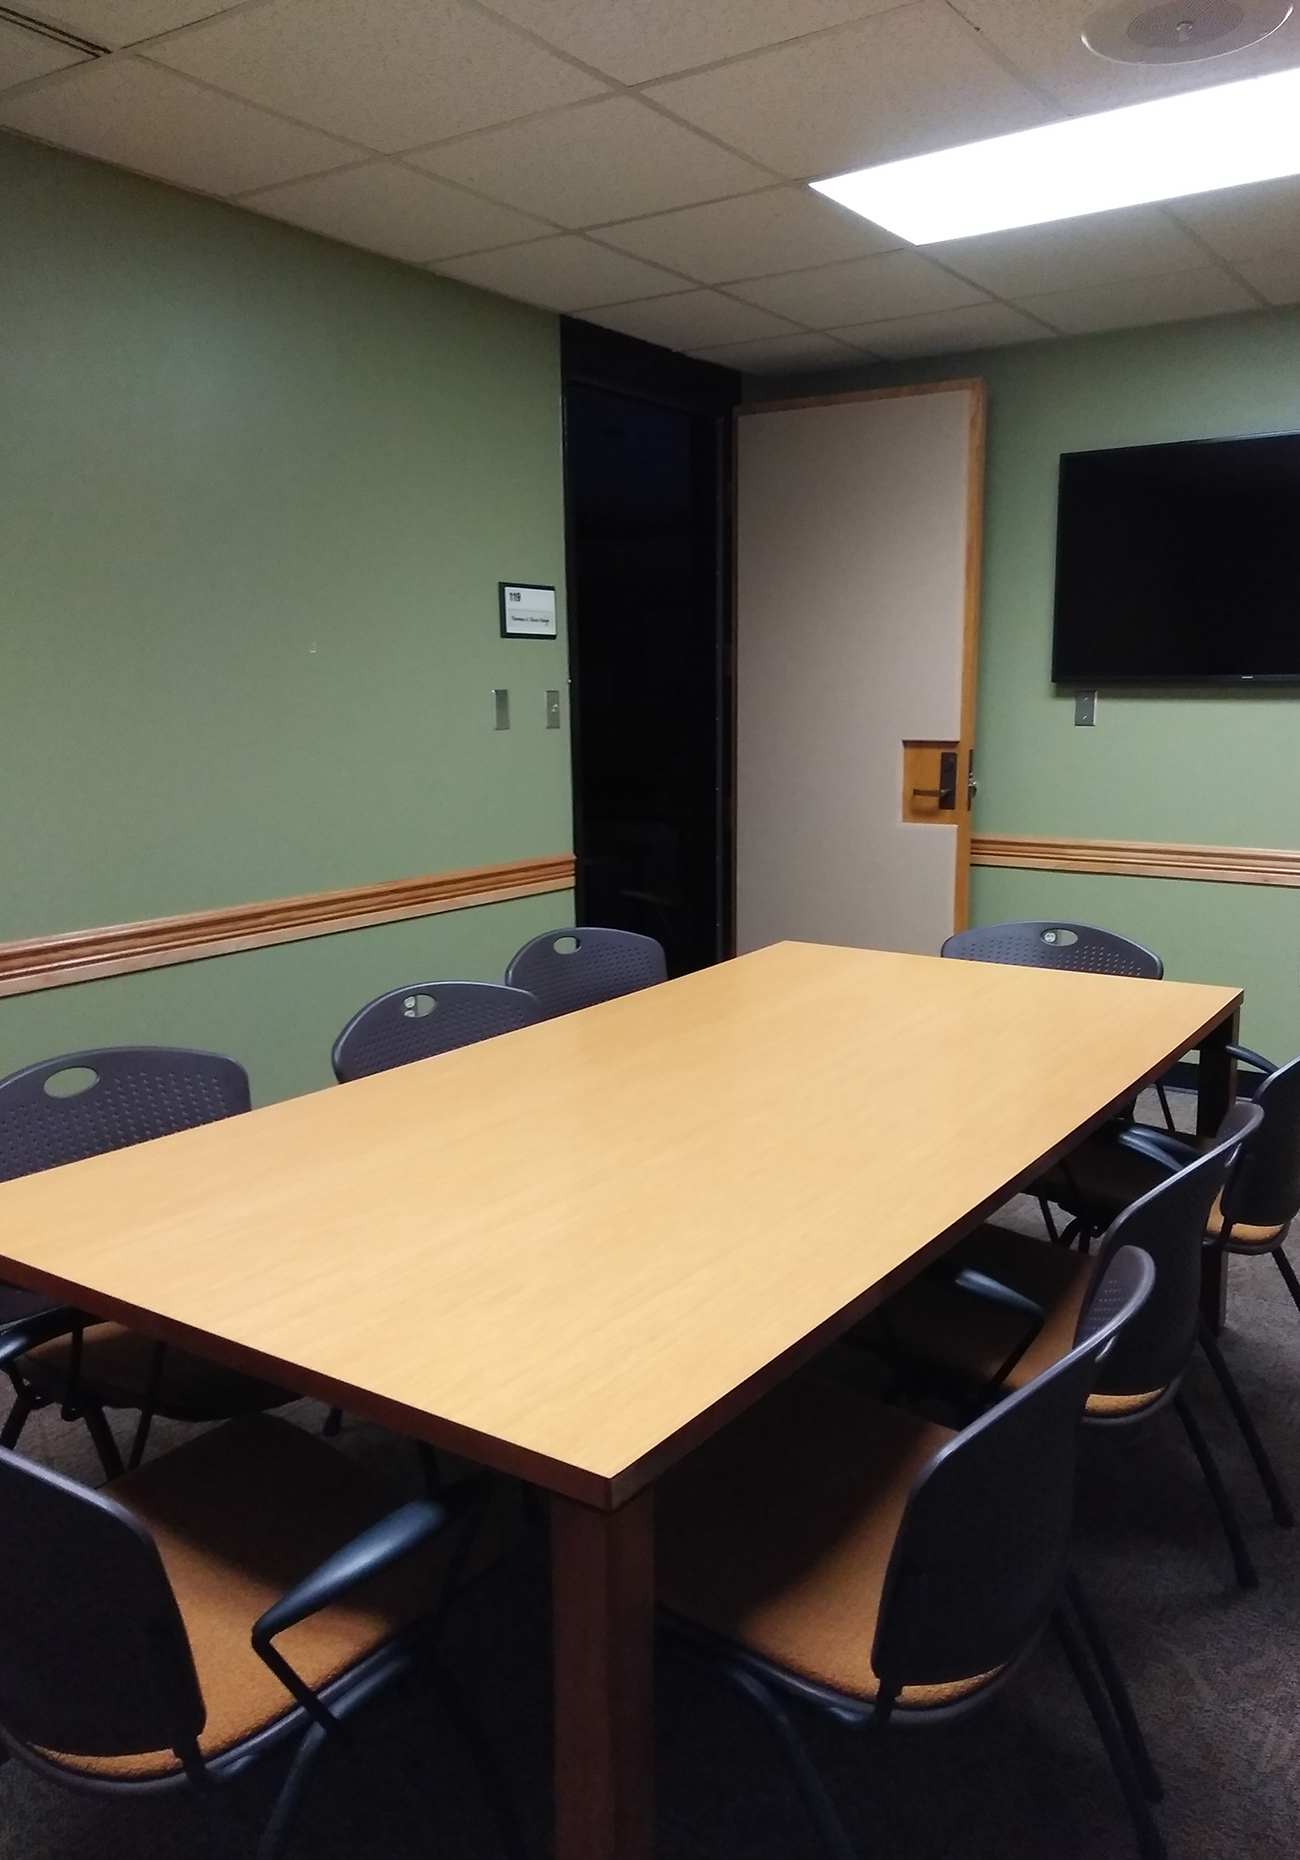 Small room with rectangular table and multiple chairs